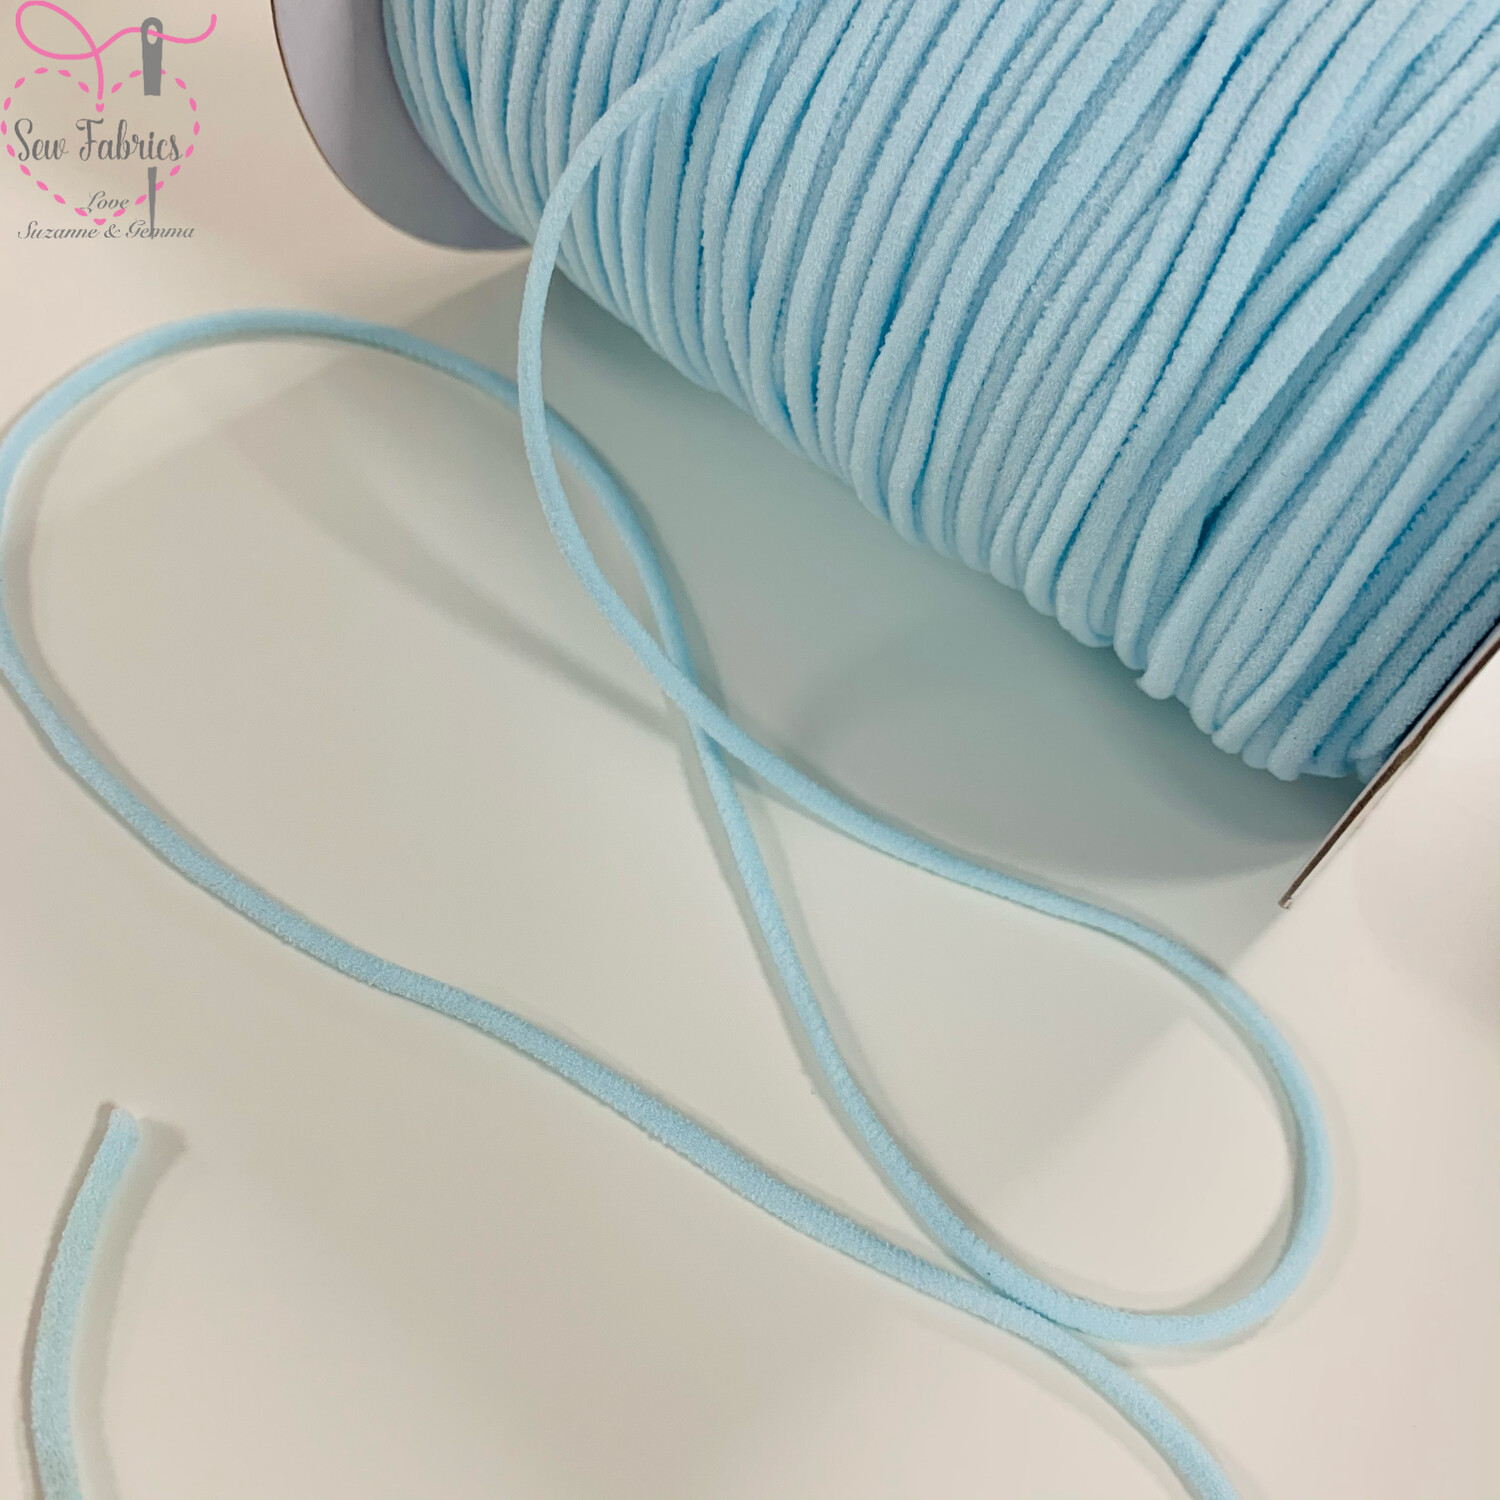 Bertie's Bows 137m / 150yd Reel of 3mm Light Blue Soft Round Elastic, Ideal For Face Masks